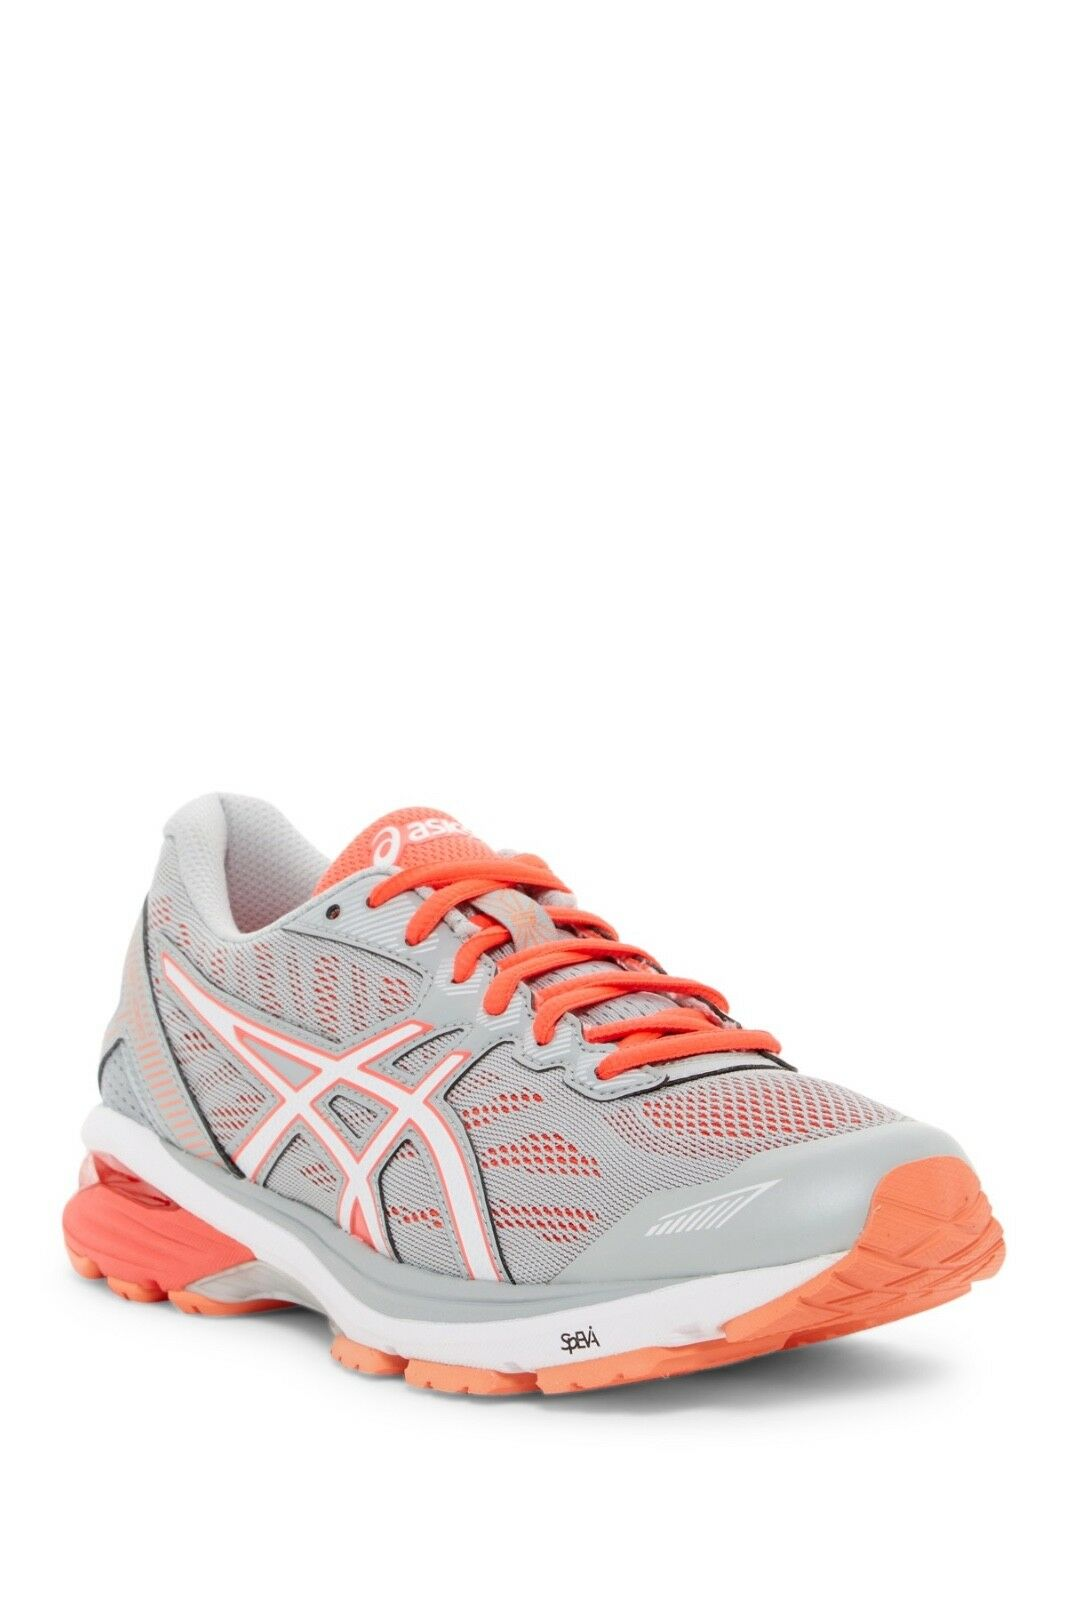 Asics GT-1000 5 Running shoes Midgrey White White White Diva Pink New In Box a06344